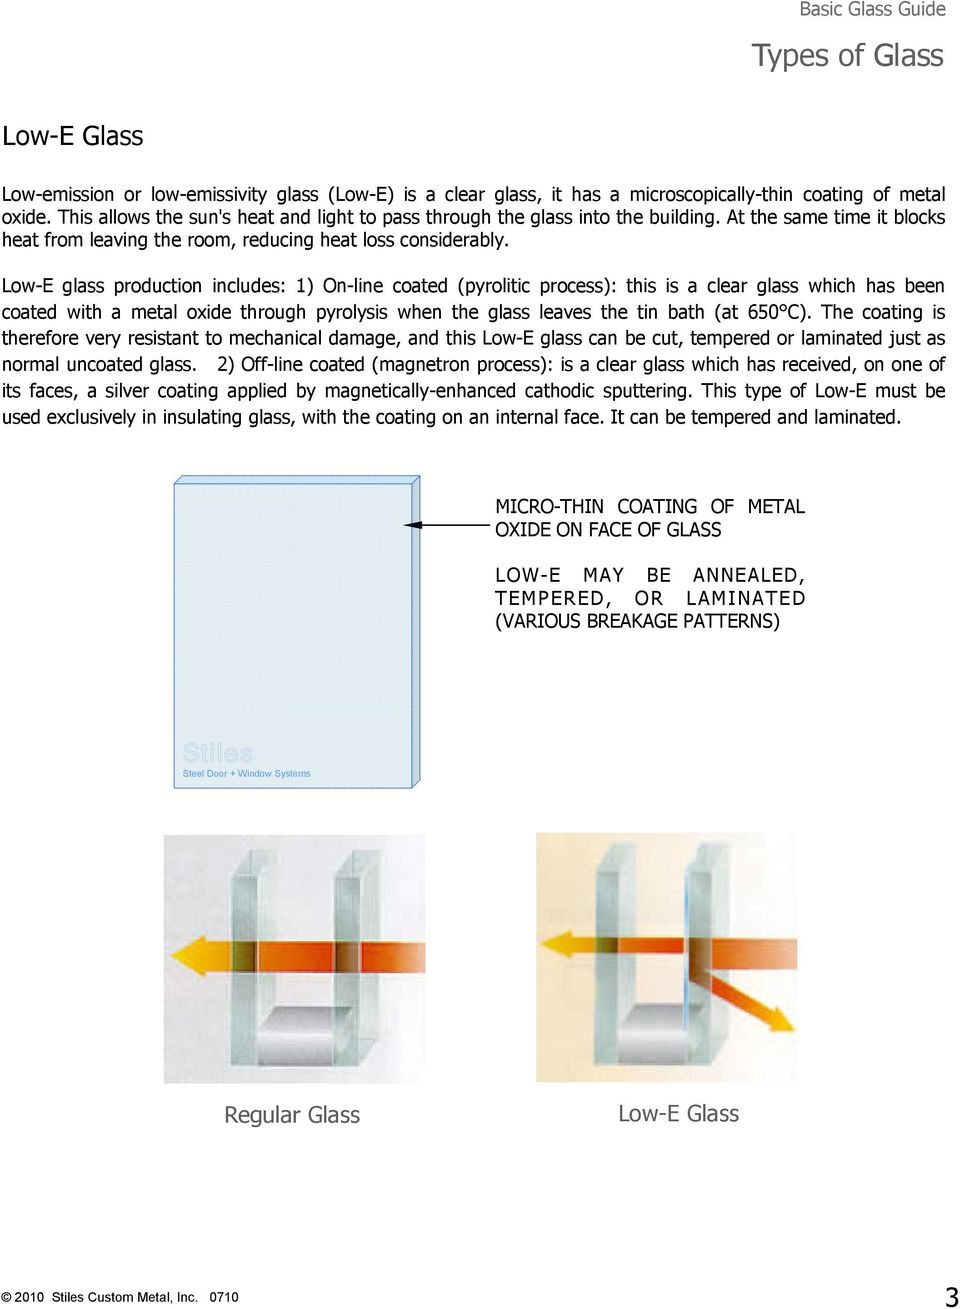 Stiles  Basic Glass Guide  Steel Door + Window Systems CONTENTS - PDF